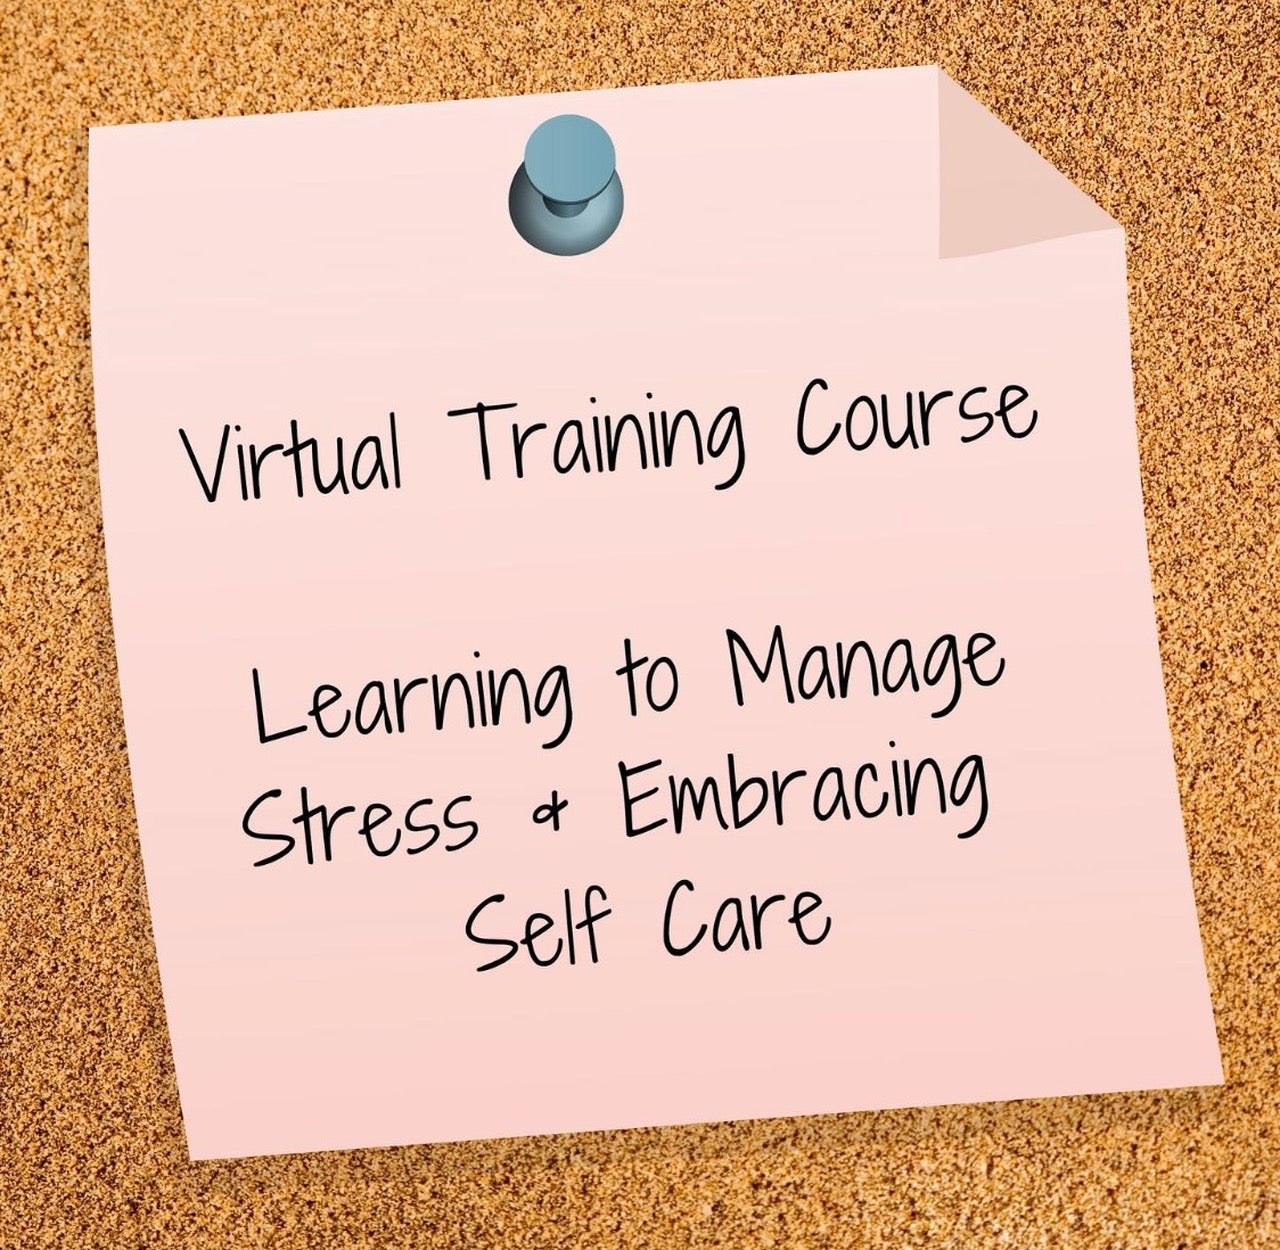 Virtual Training Course - Learning to Manage Stress & Embracing Self Care